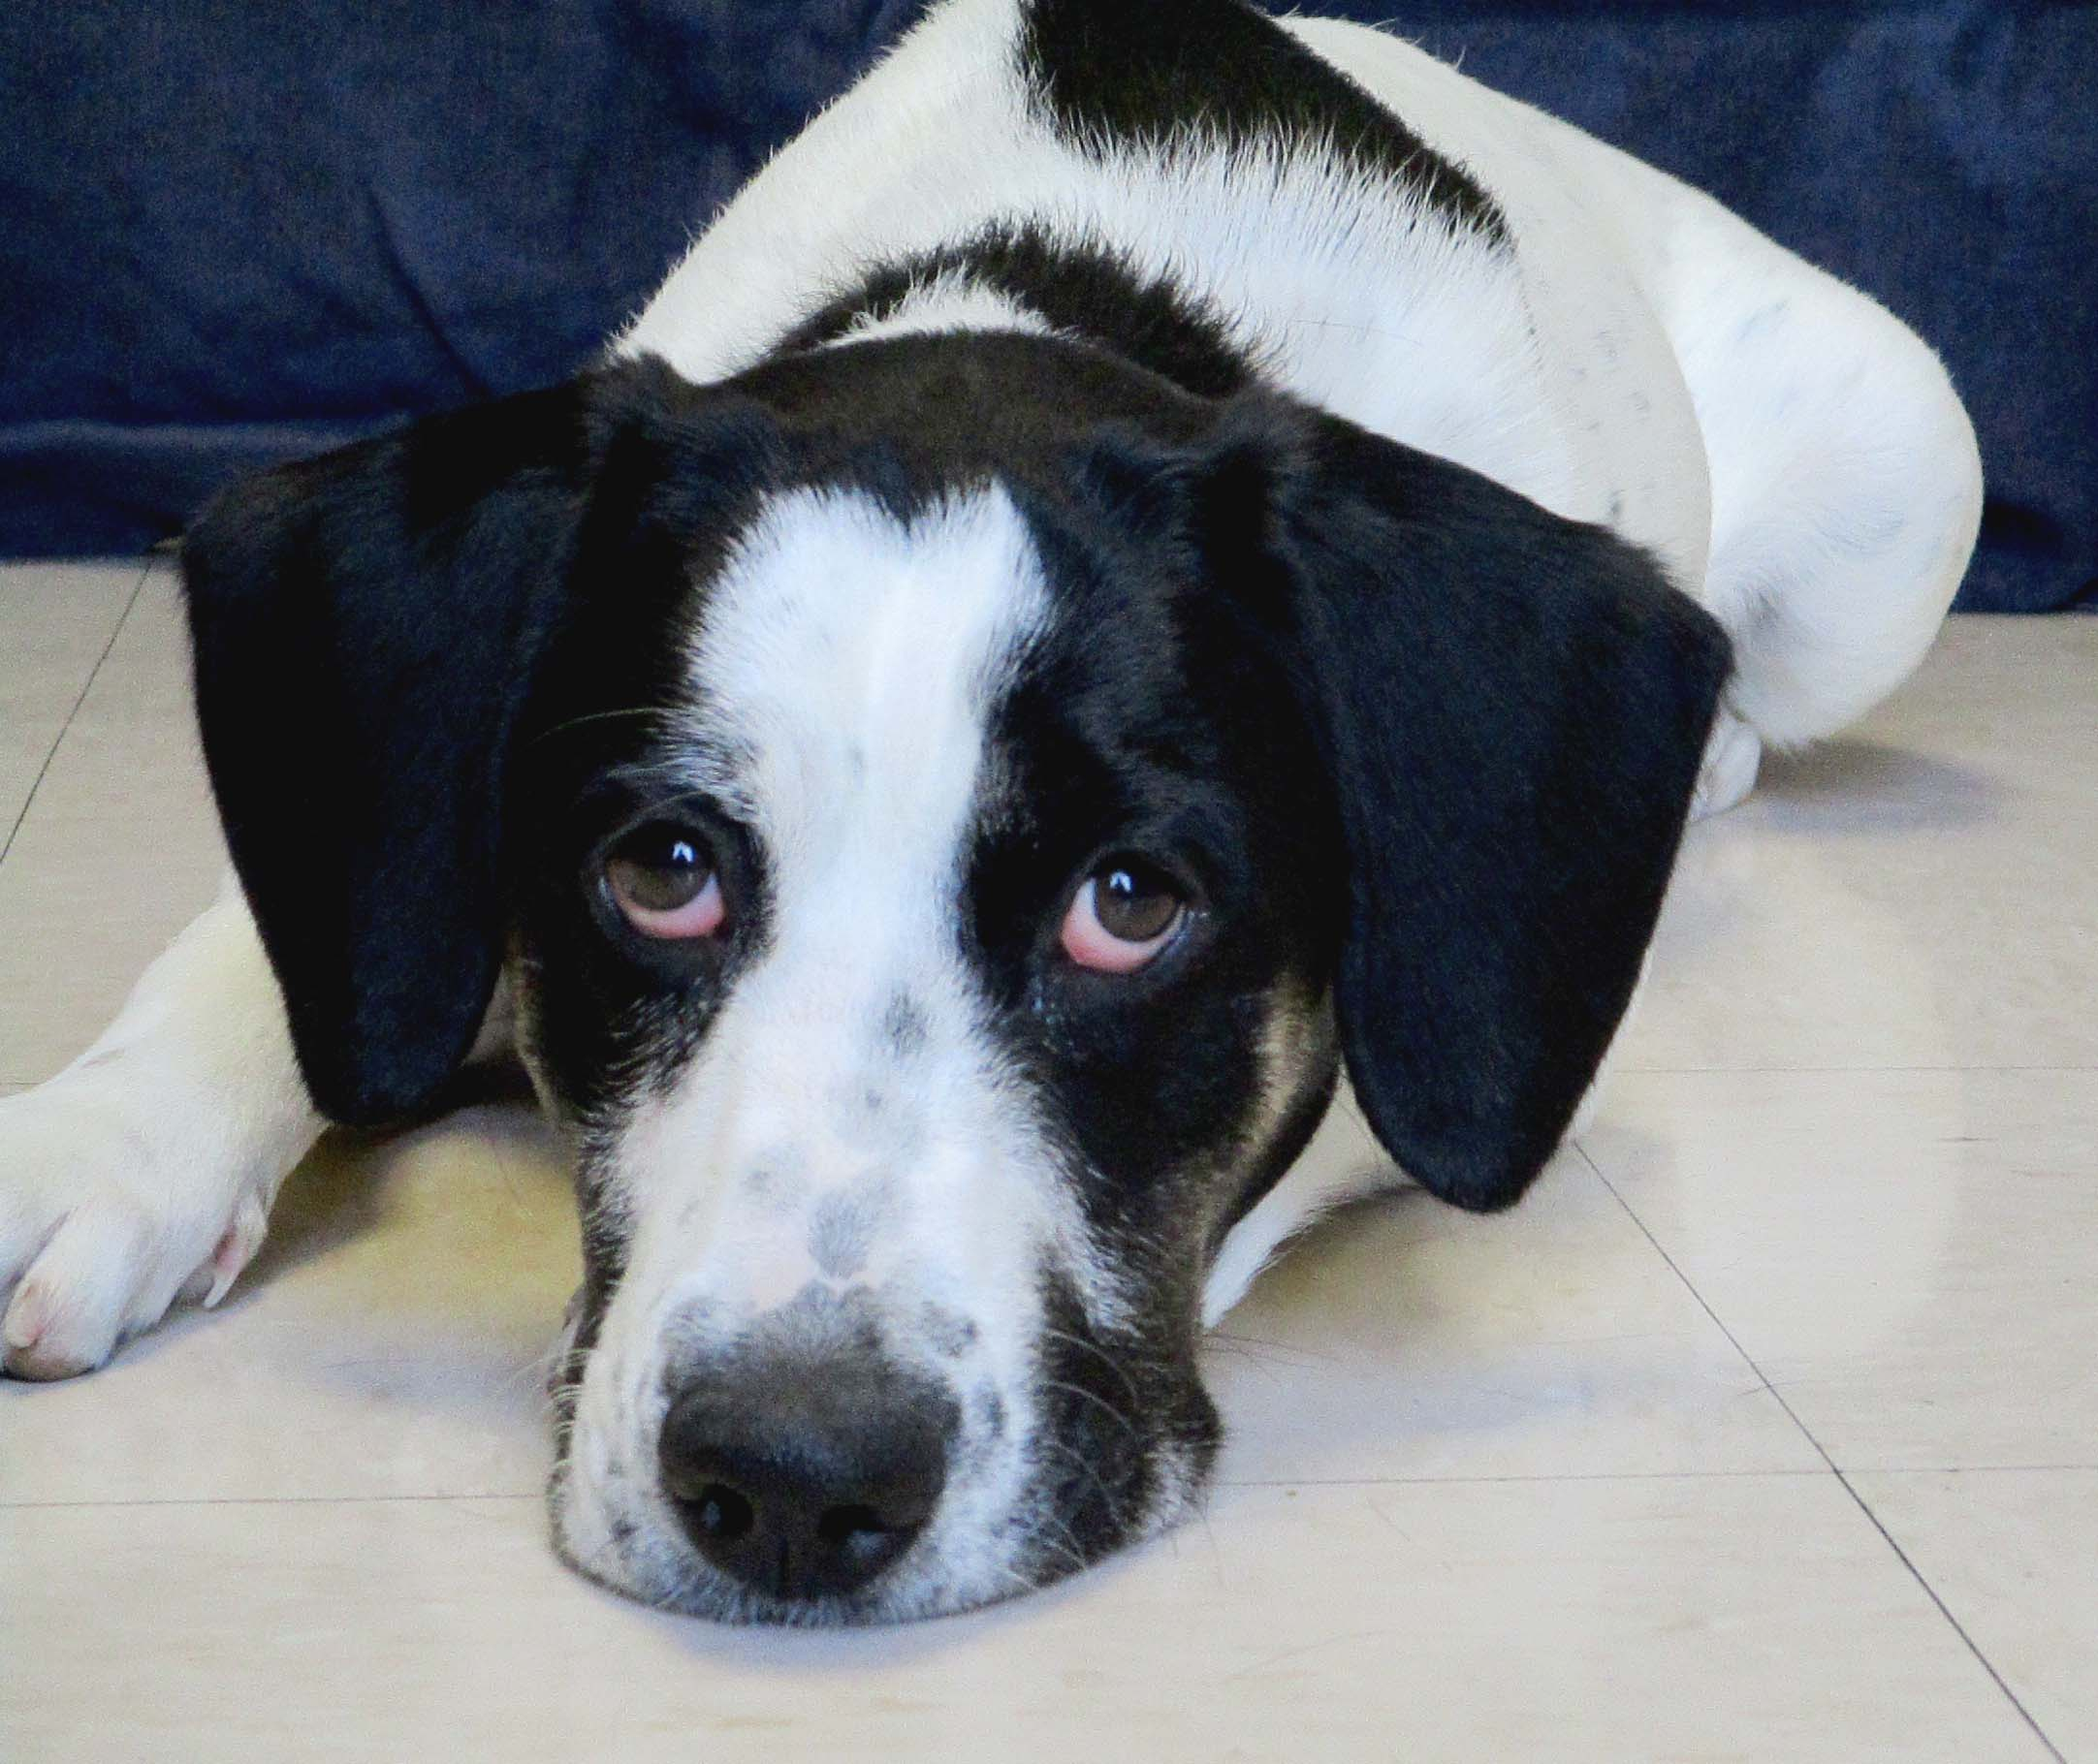 Elsie is a 6 month old Hound Mix that was too much for her previous family to keep up with. She is looking for her furever home, but she needs to be the only pet. Elsie can be intense with food or other high value resources so an experienced home is recommended. Once she warms up she can be very social and your best friend!